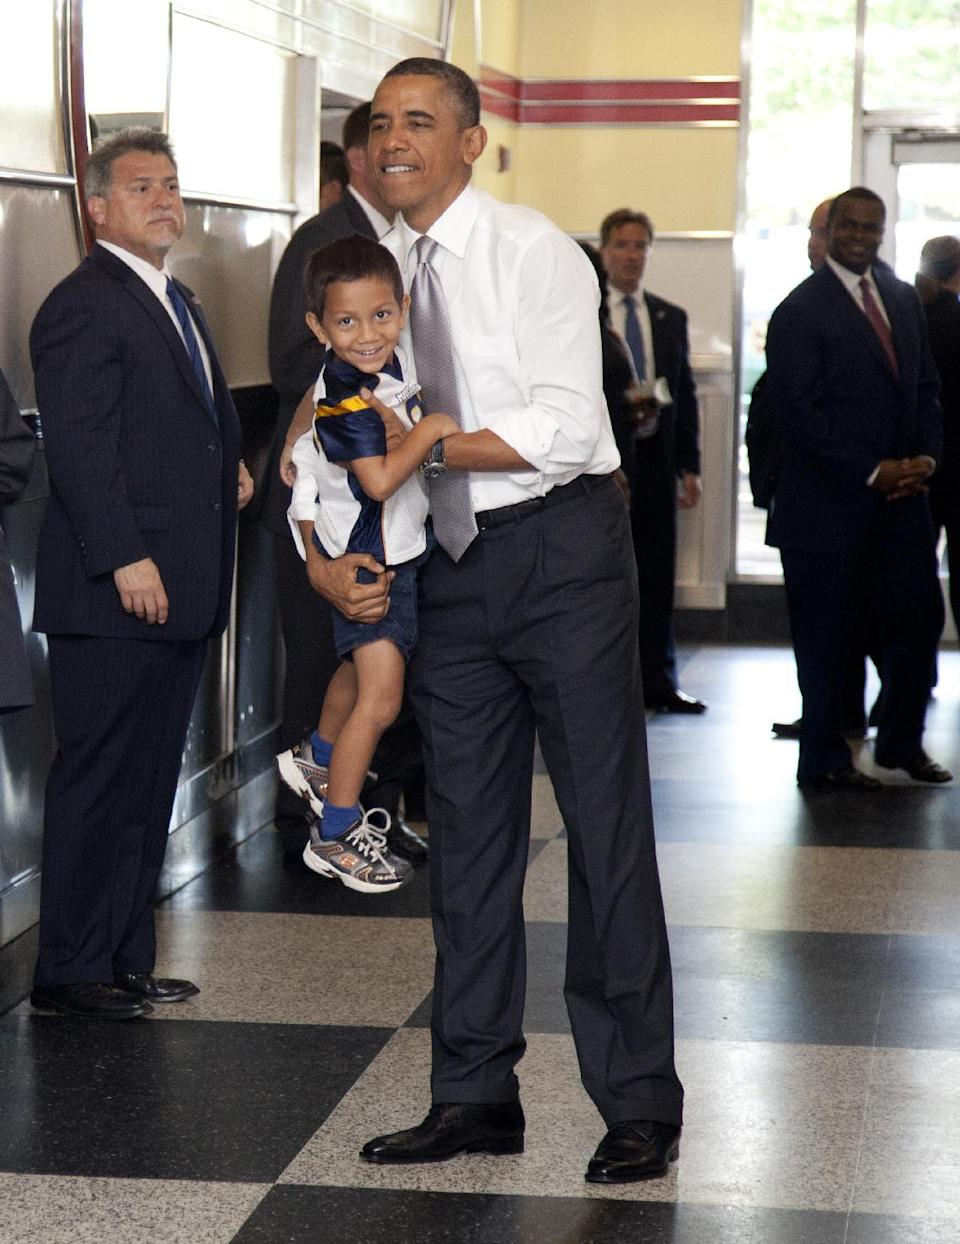 President Barack Obama picks up a boy as he visits The Varsity restaurant, Tuesday, June 26, 2012, in Atlanta. (AP Photo/Carolyn Kaster)